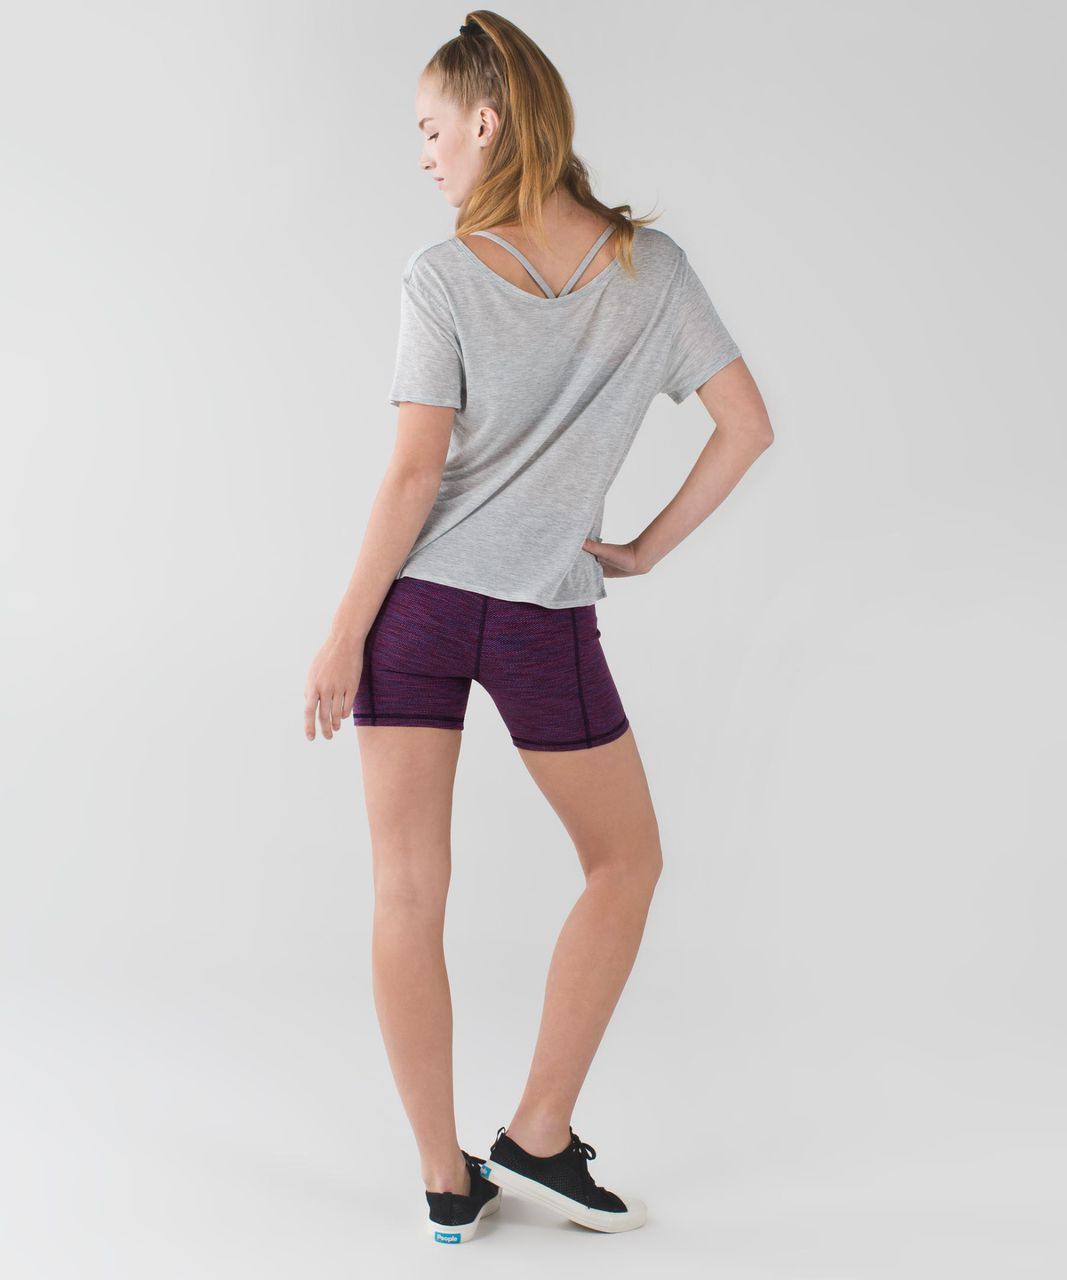 Lululemon Groove Short II (Roll Down - Regular) - Diamond Jacquard Space Dye Naval Blue Jewelled Magenta